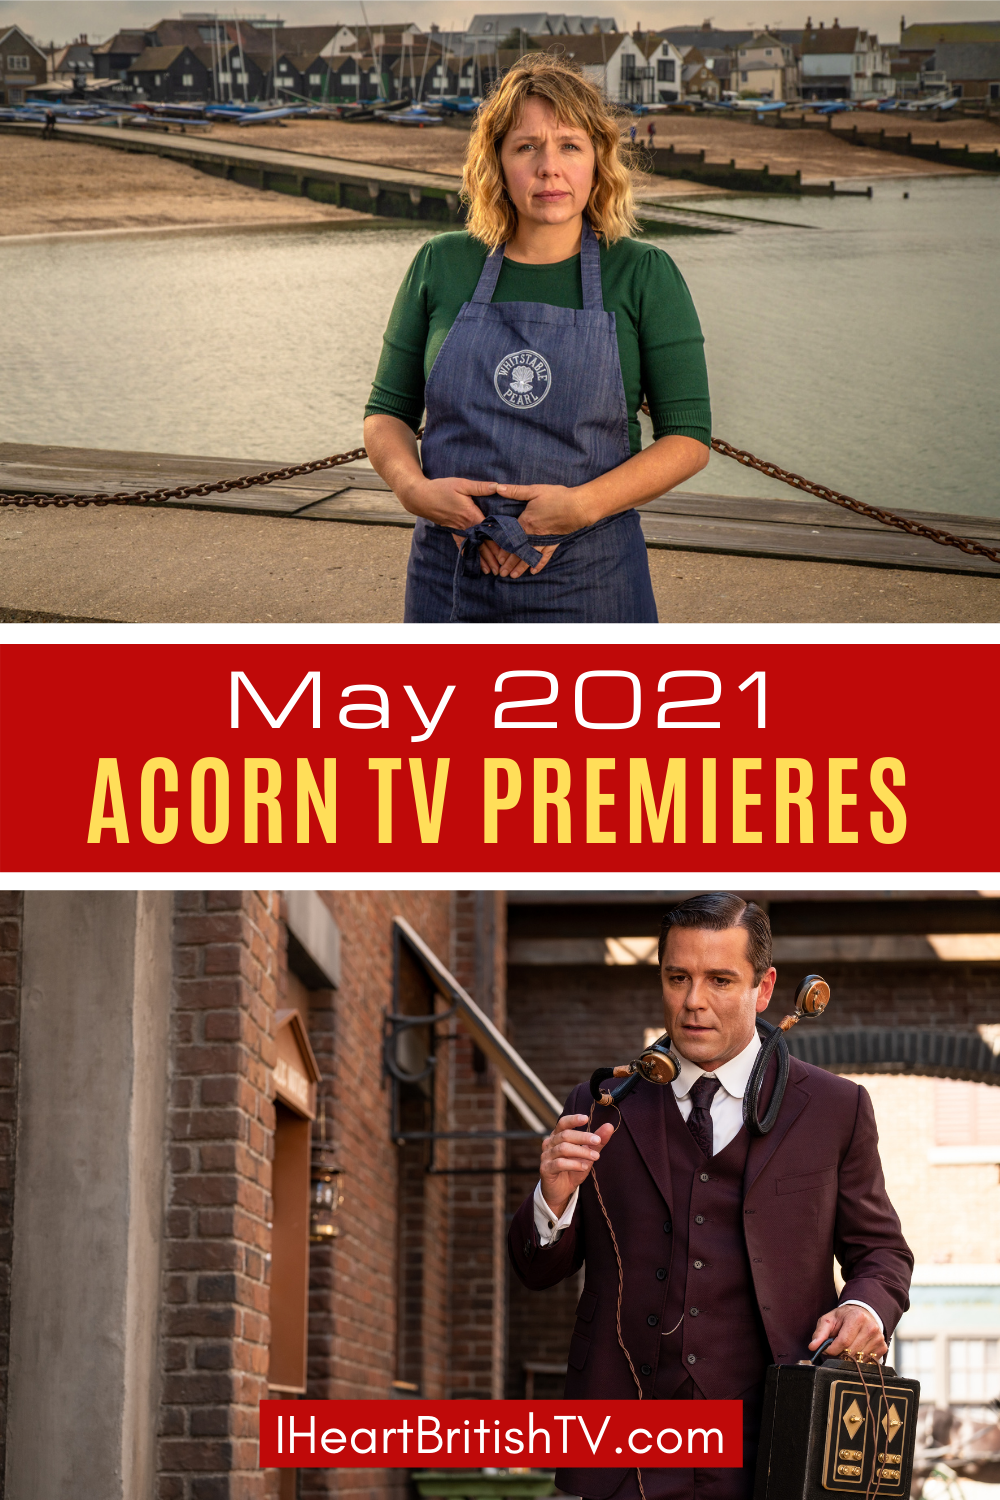 May British TV Premieres: What's New on Acorn TV for May 2021? 15